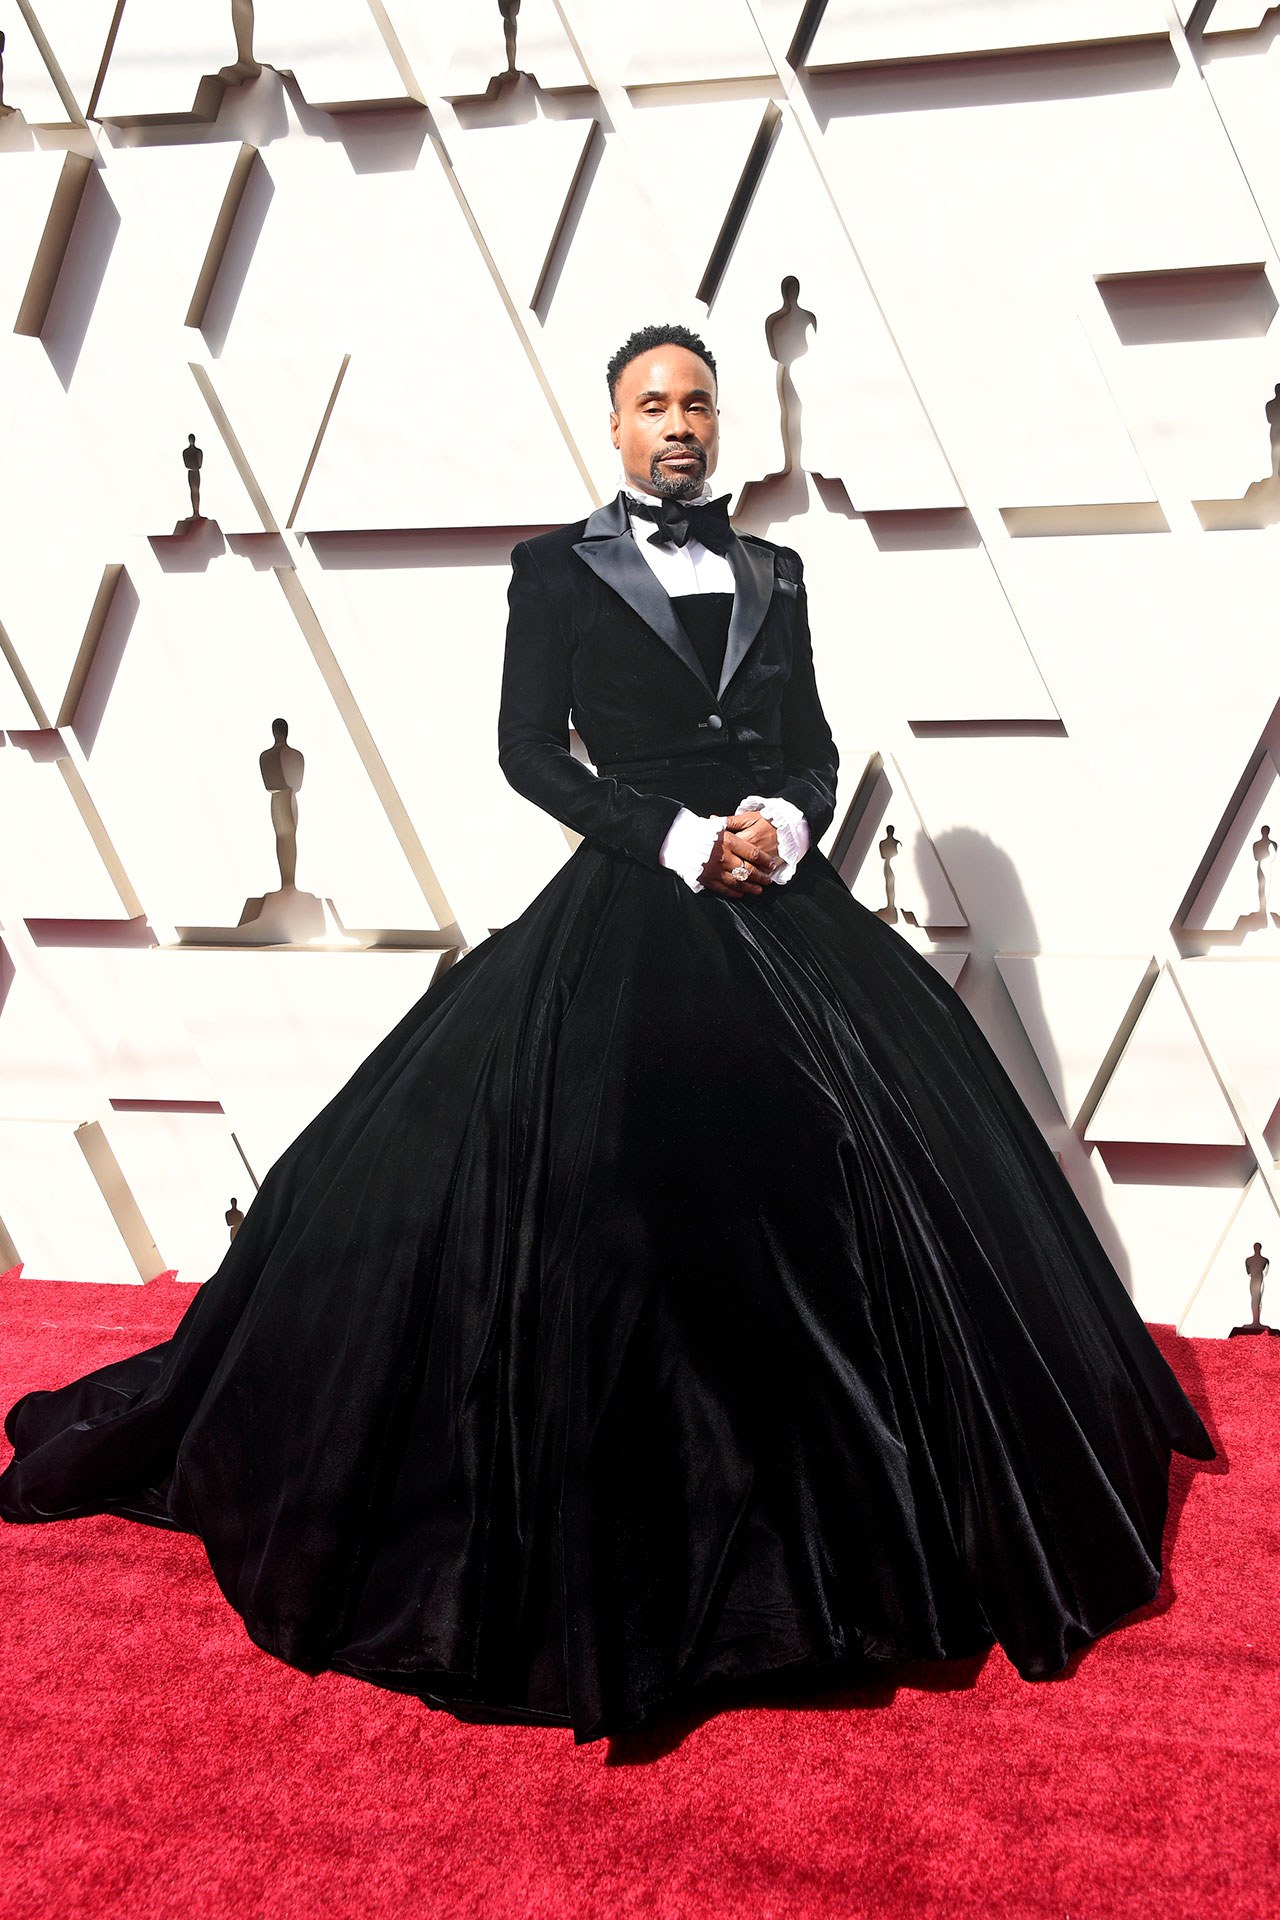 Billy-Porter-The-Oscars2019-Vogueint-Feb24-Getty-Images.jpg